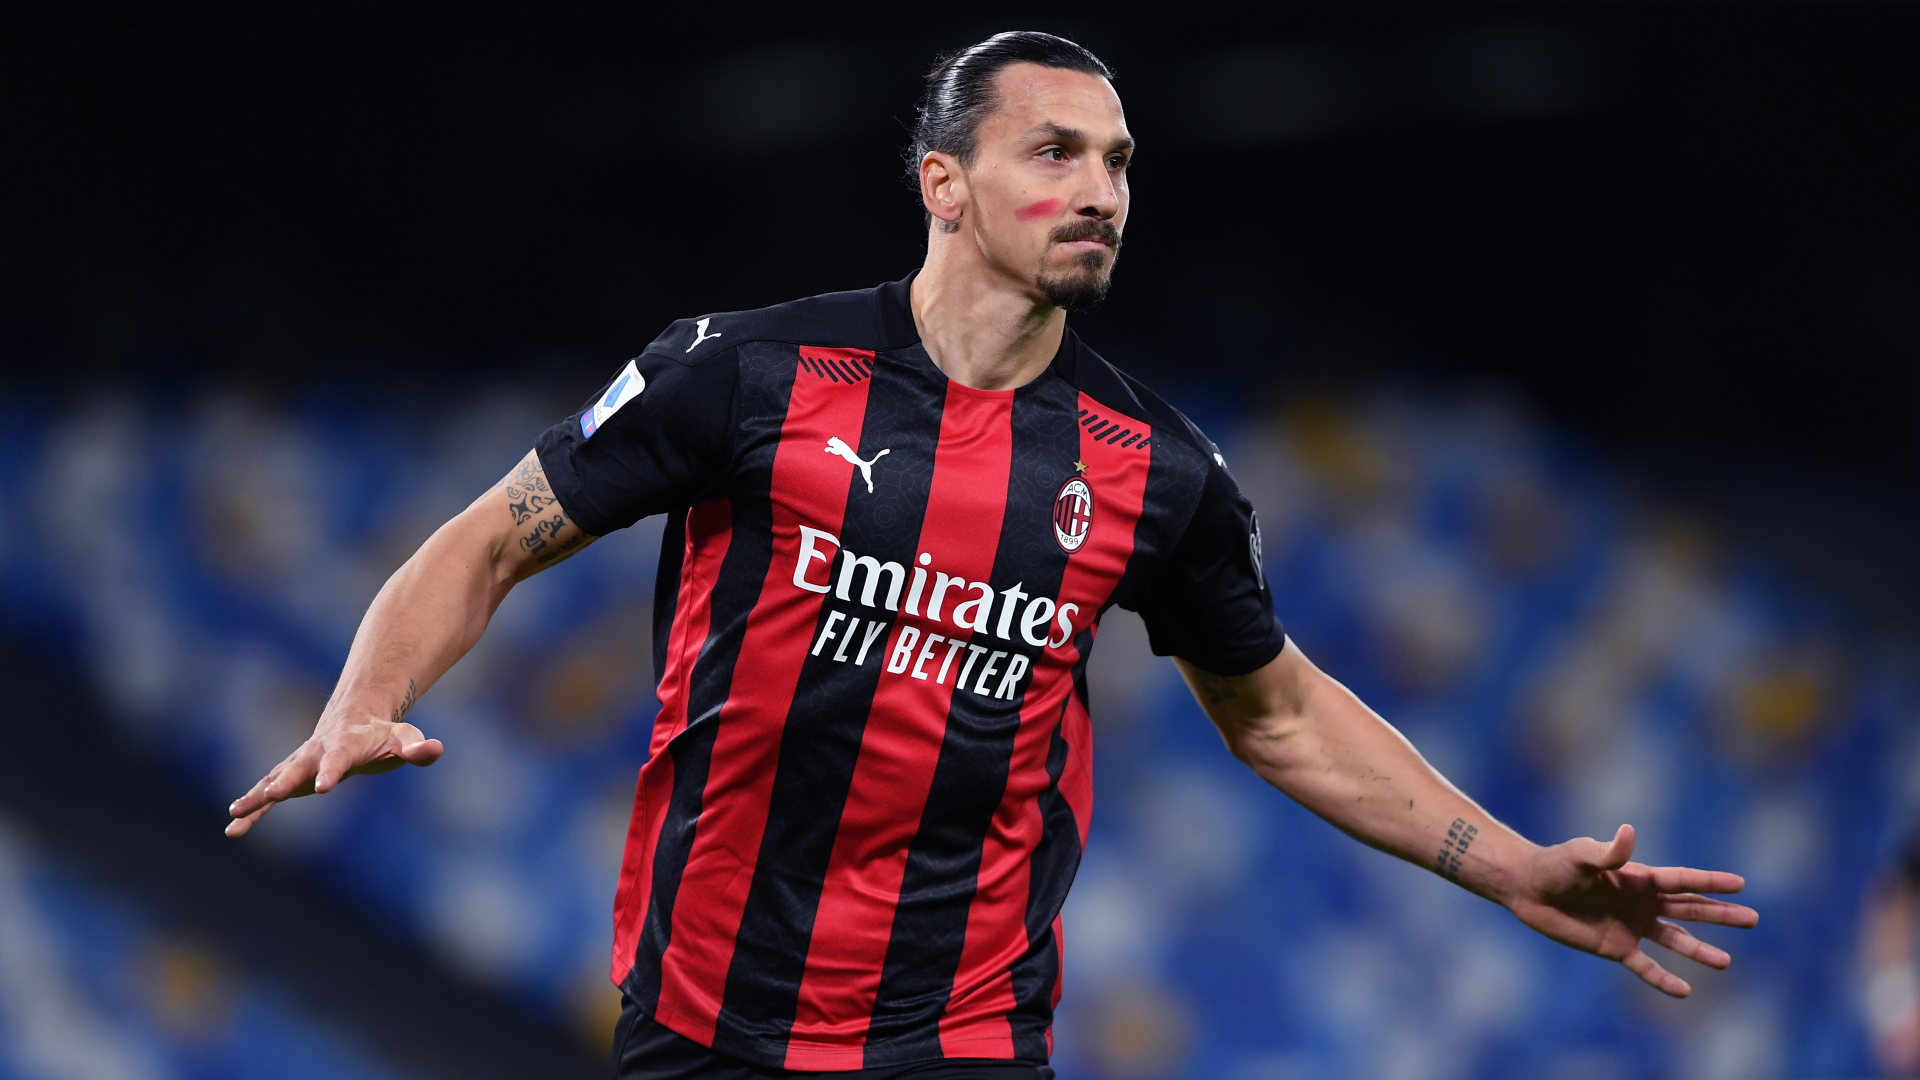 Ibrahimovic dismisses serious injury concerns and wants Sweden return